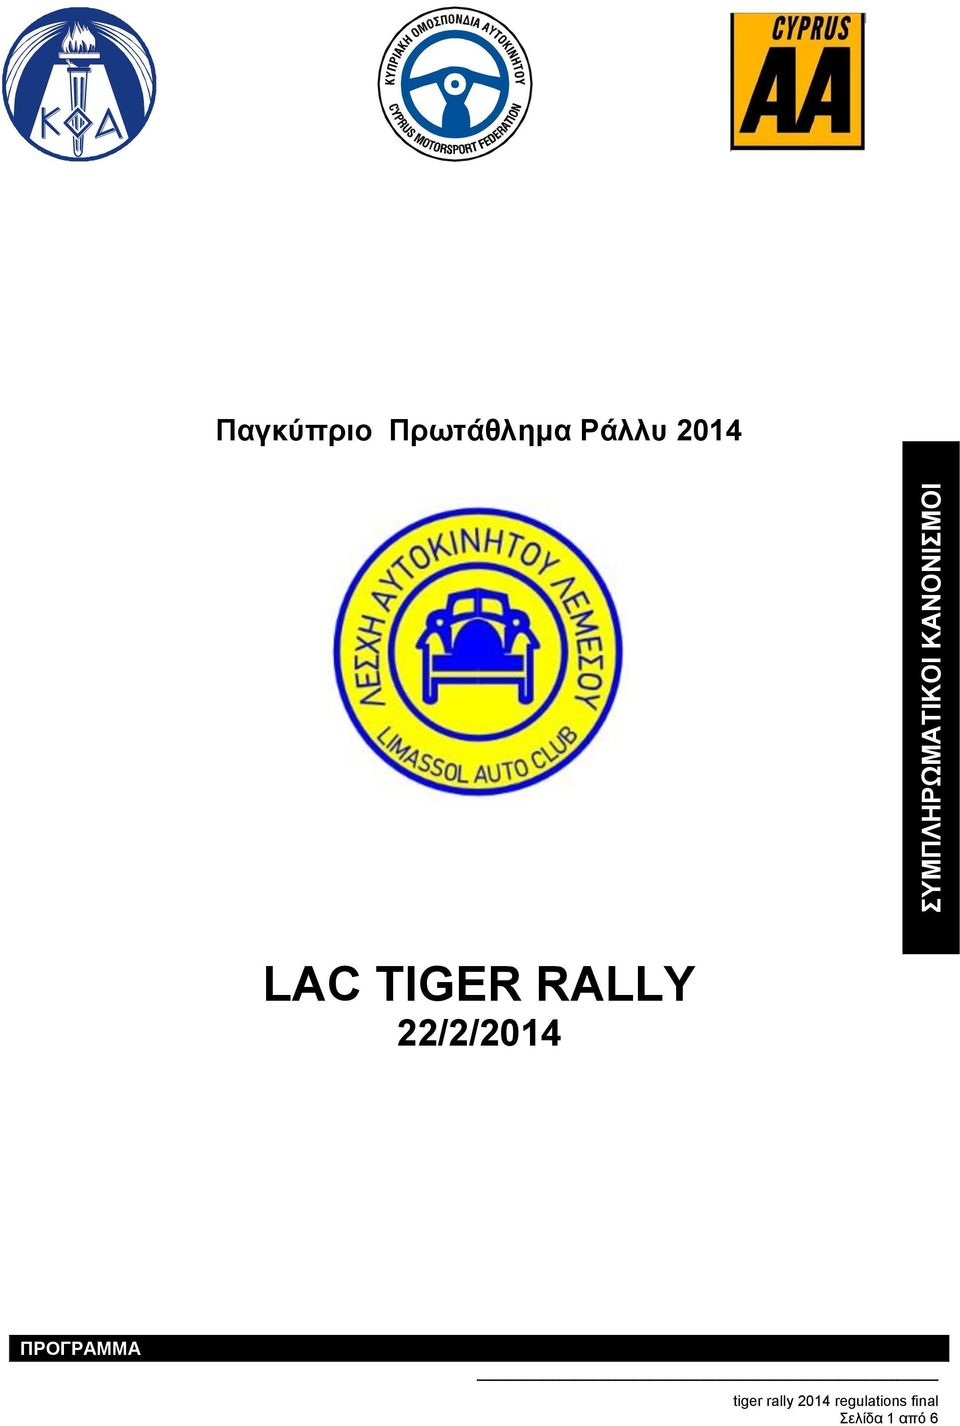 2014 LAC TIGER RALLY